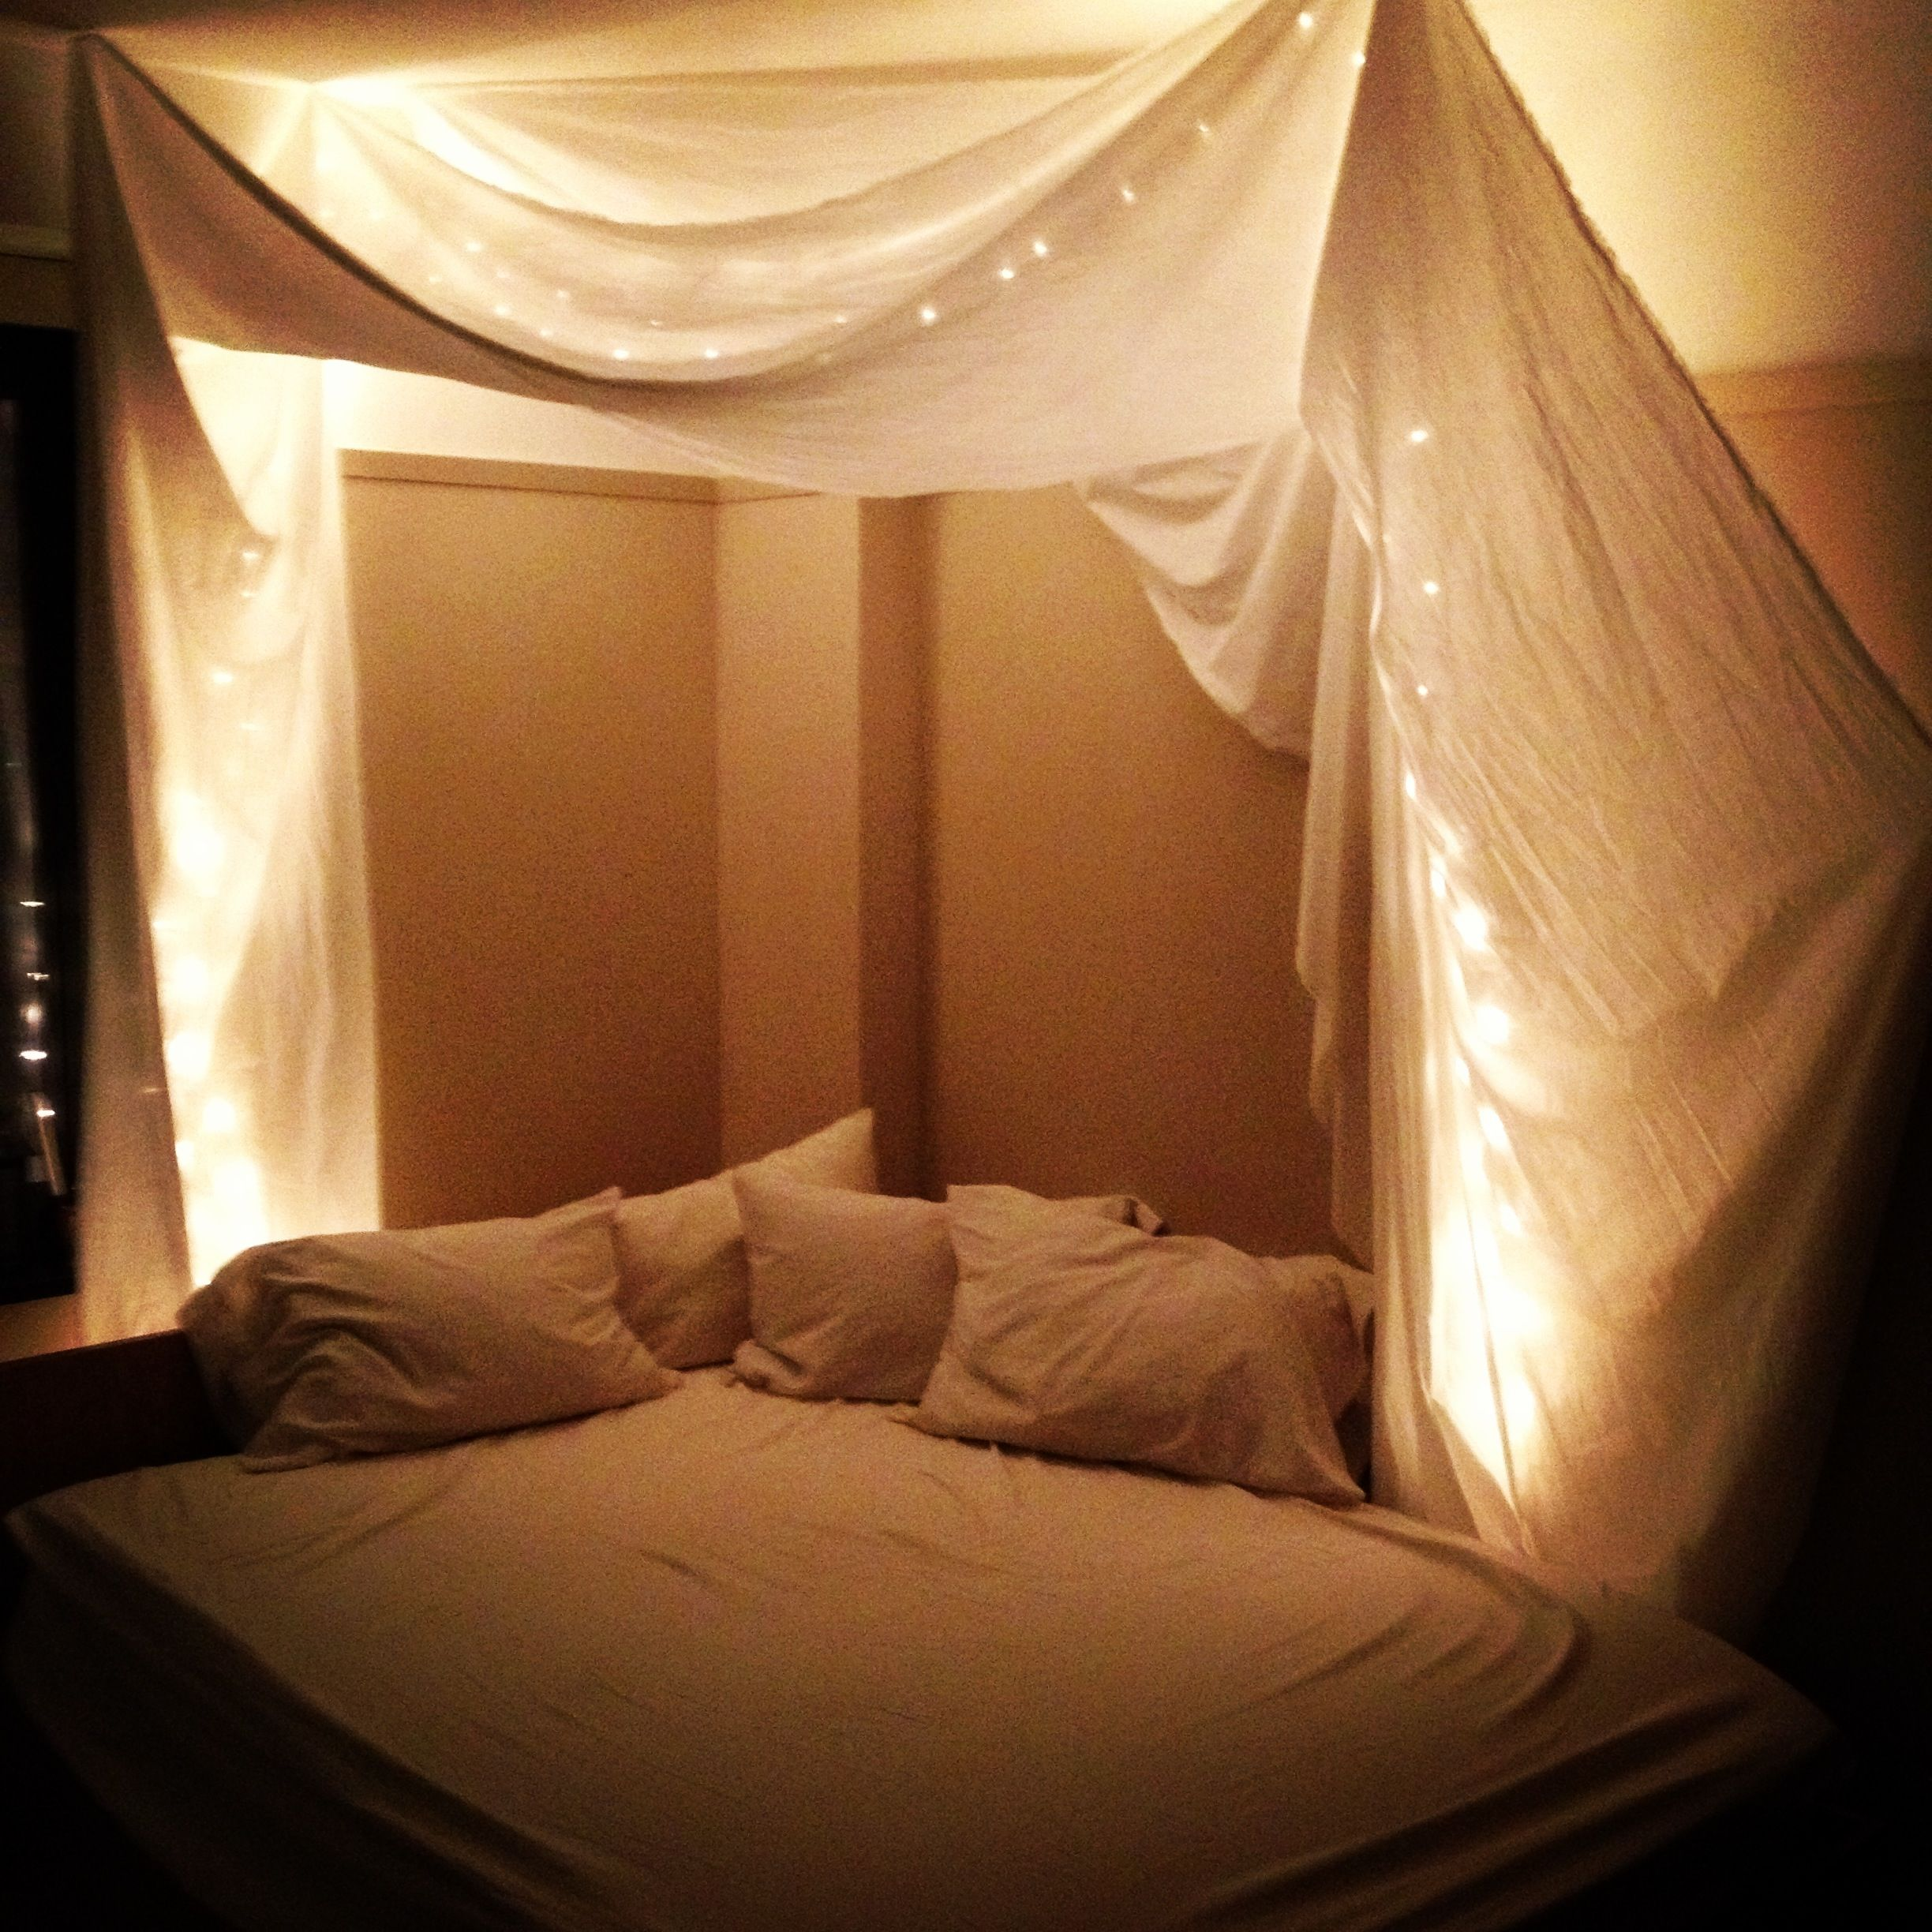 Fabric Bed Drapes | Things I Love | Pinterest | Bed drapes ...